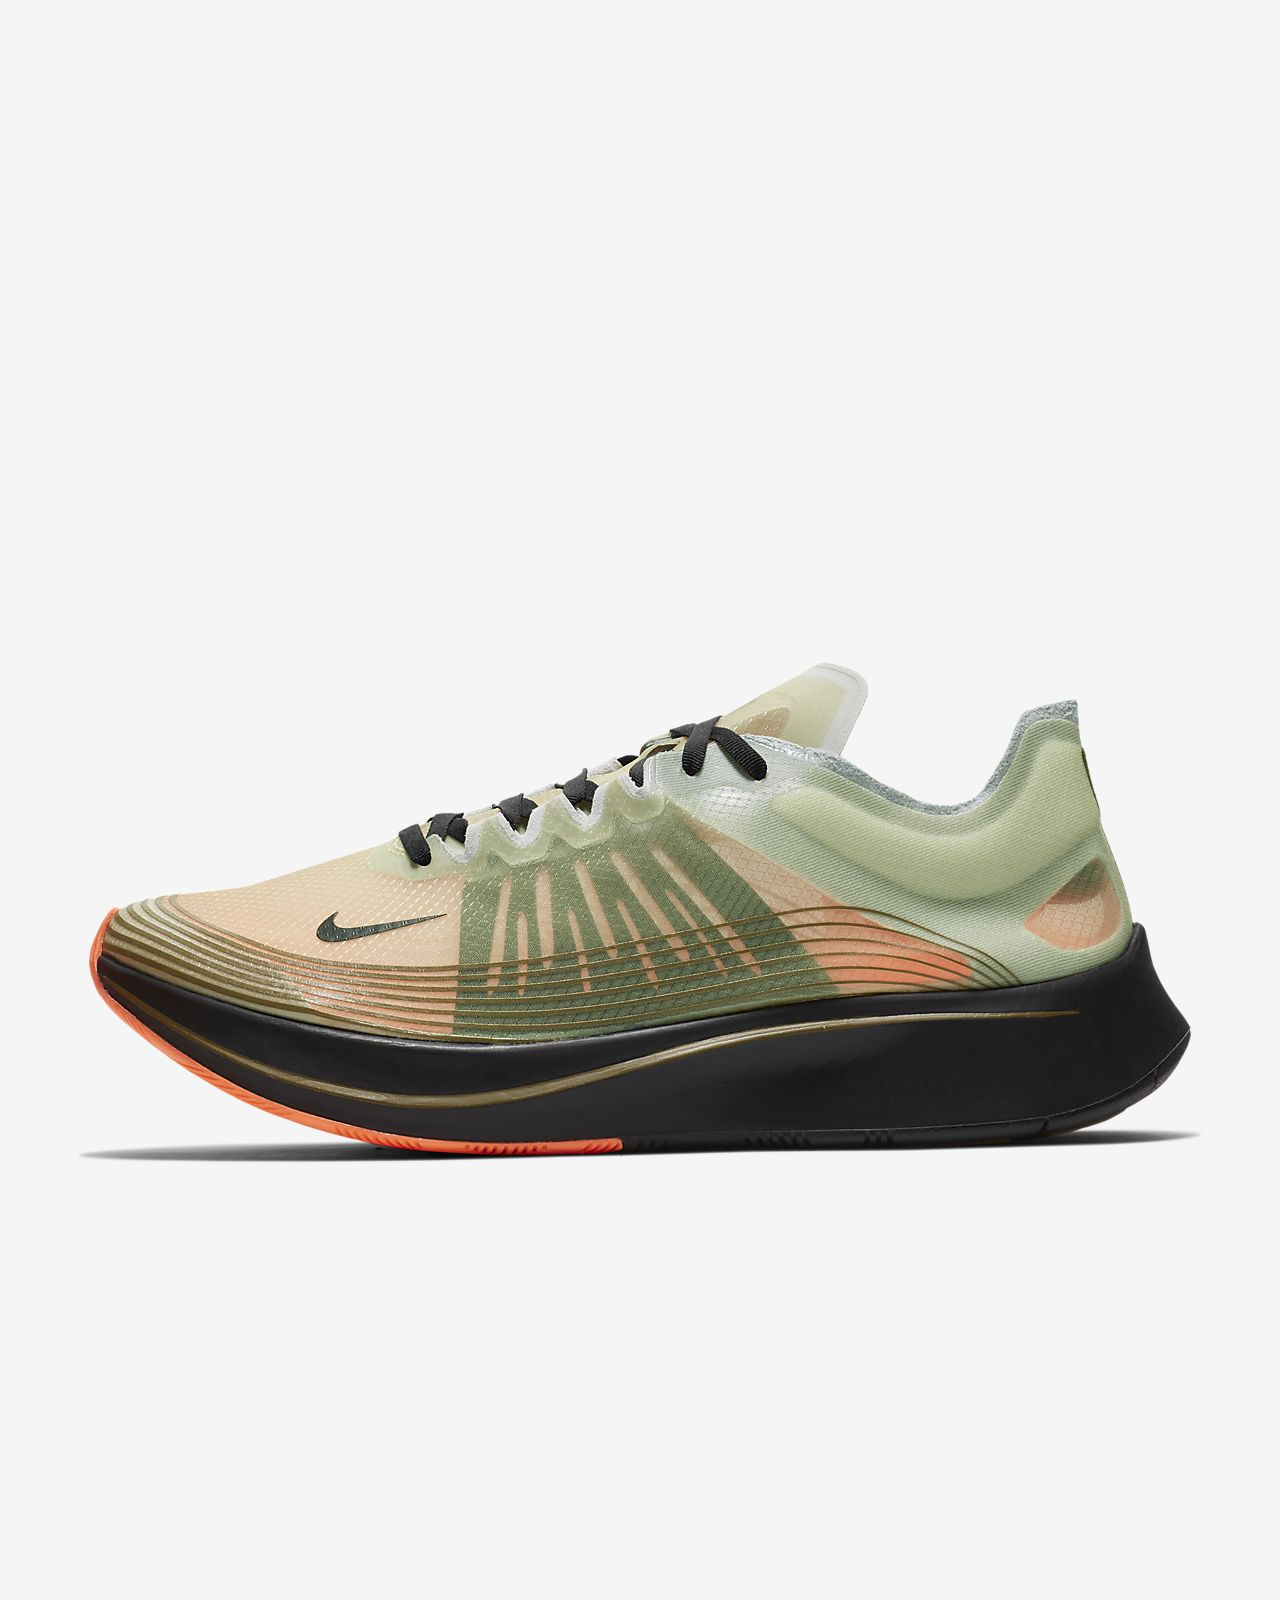 e1bba7ddbbe2 ... netherlands nike zoom fly sp unisex running shoe e4f3c 9b007